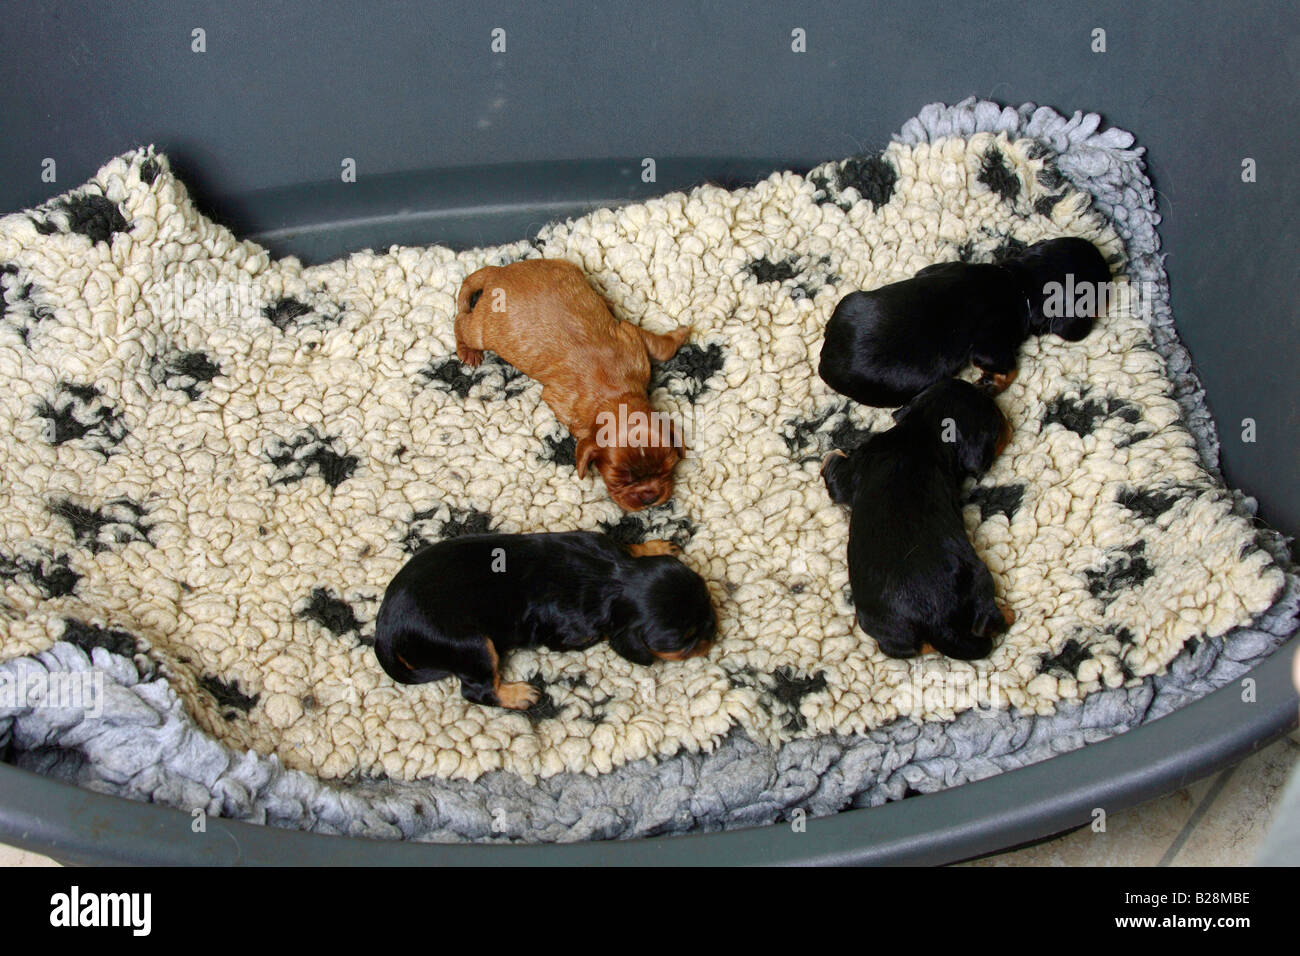 Cavalier King Charles Spaniel puppies black and tan and ruby 8 days searching for body contact sequence 2 4 - Stock Image